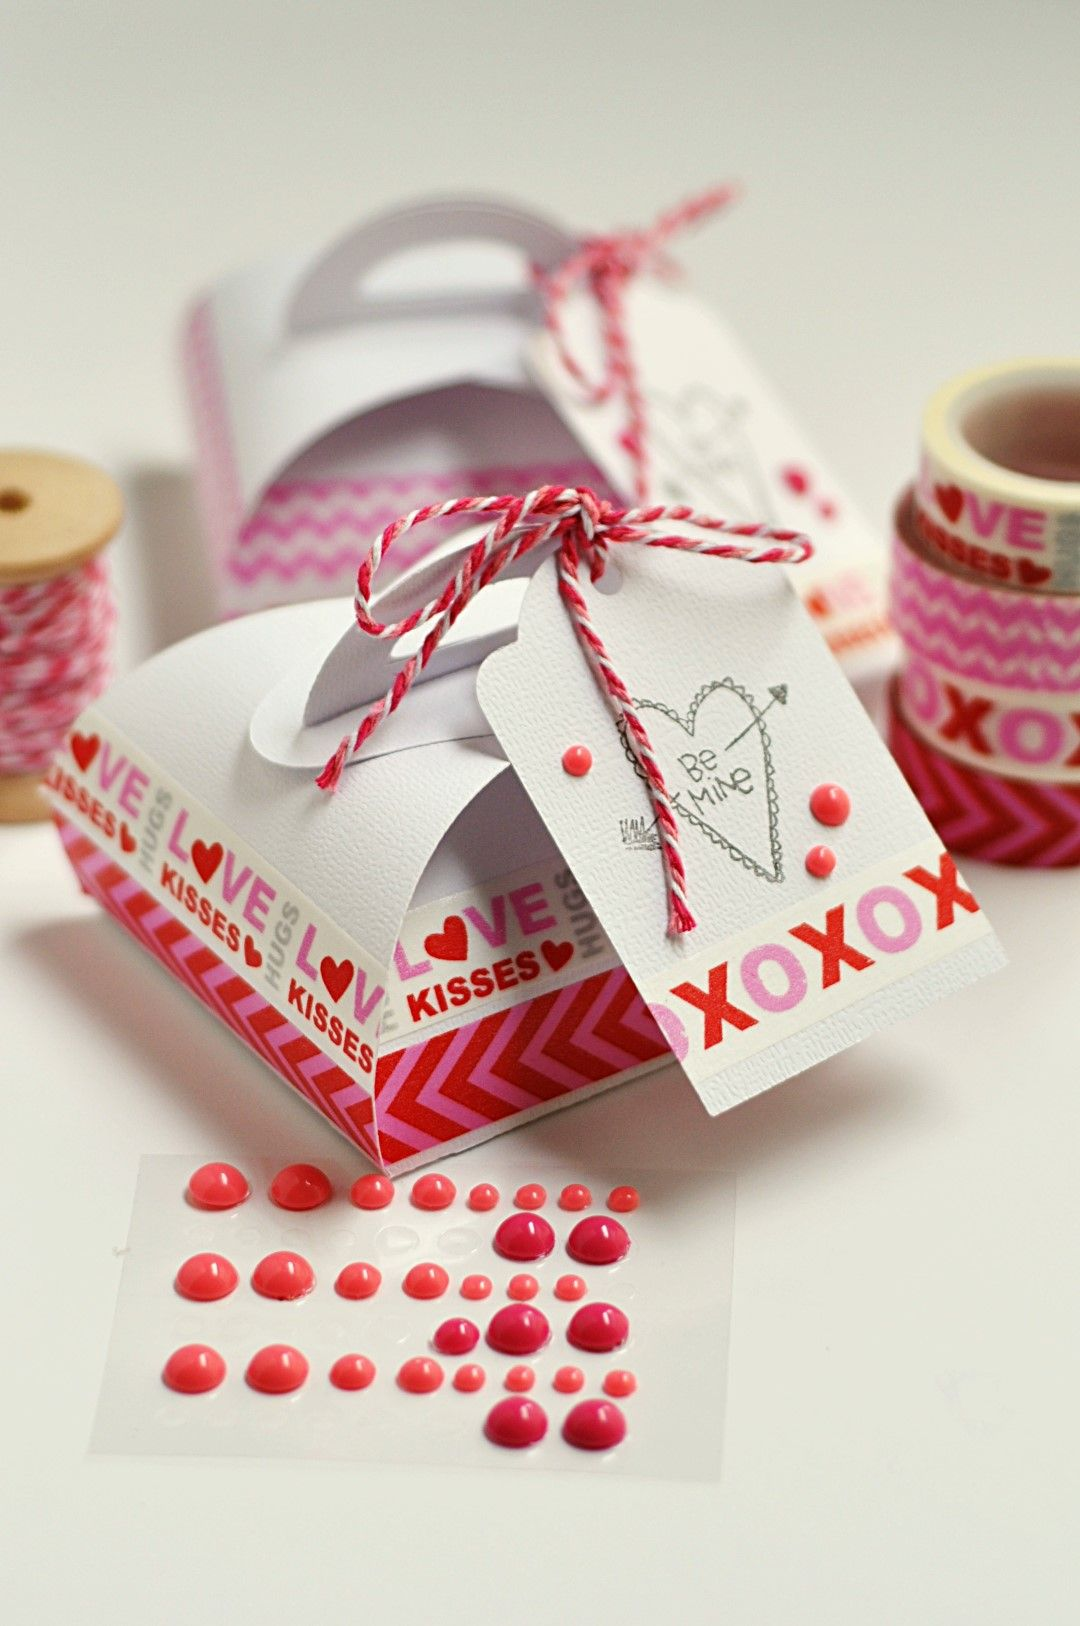 Decorating a simple gift box is easy and simple with Washi Tape